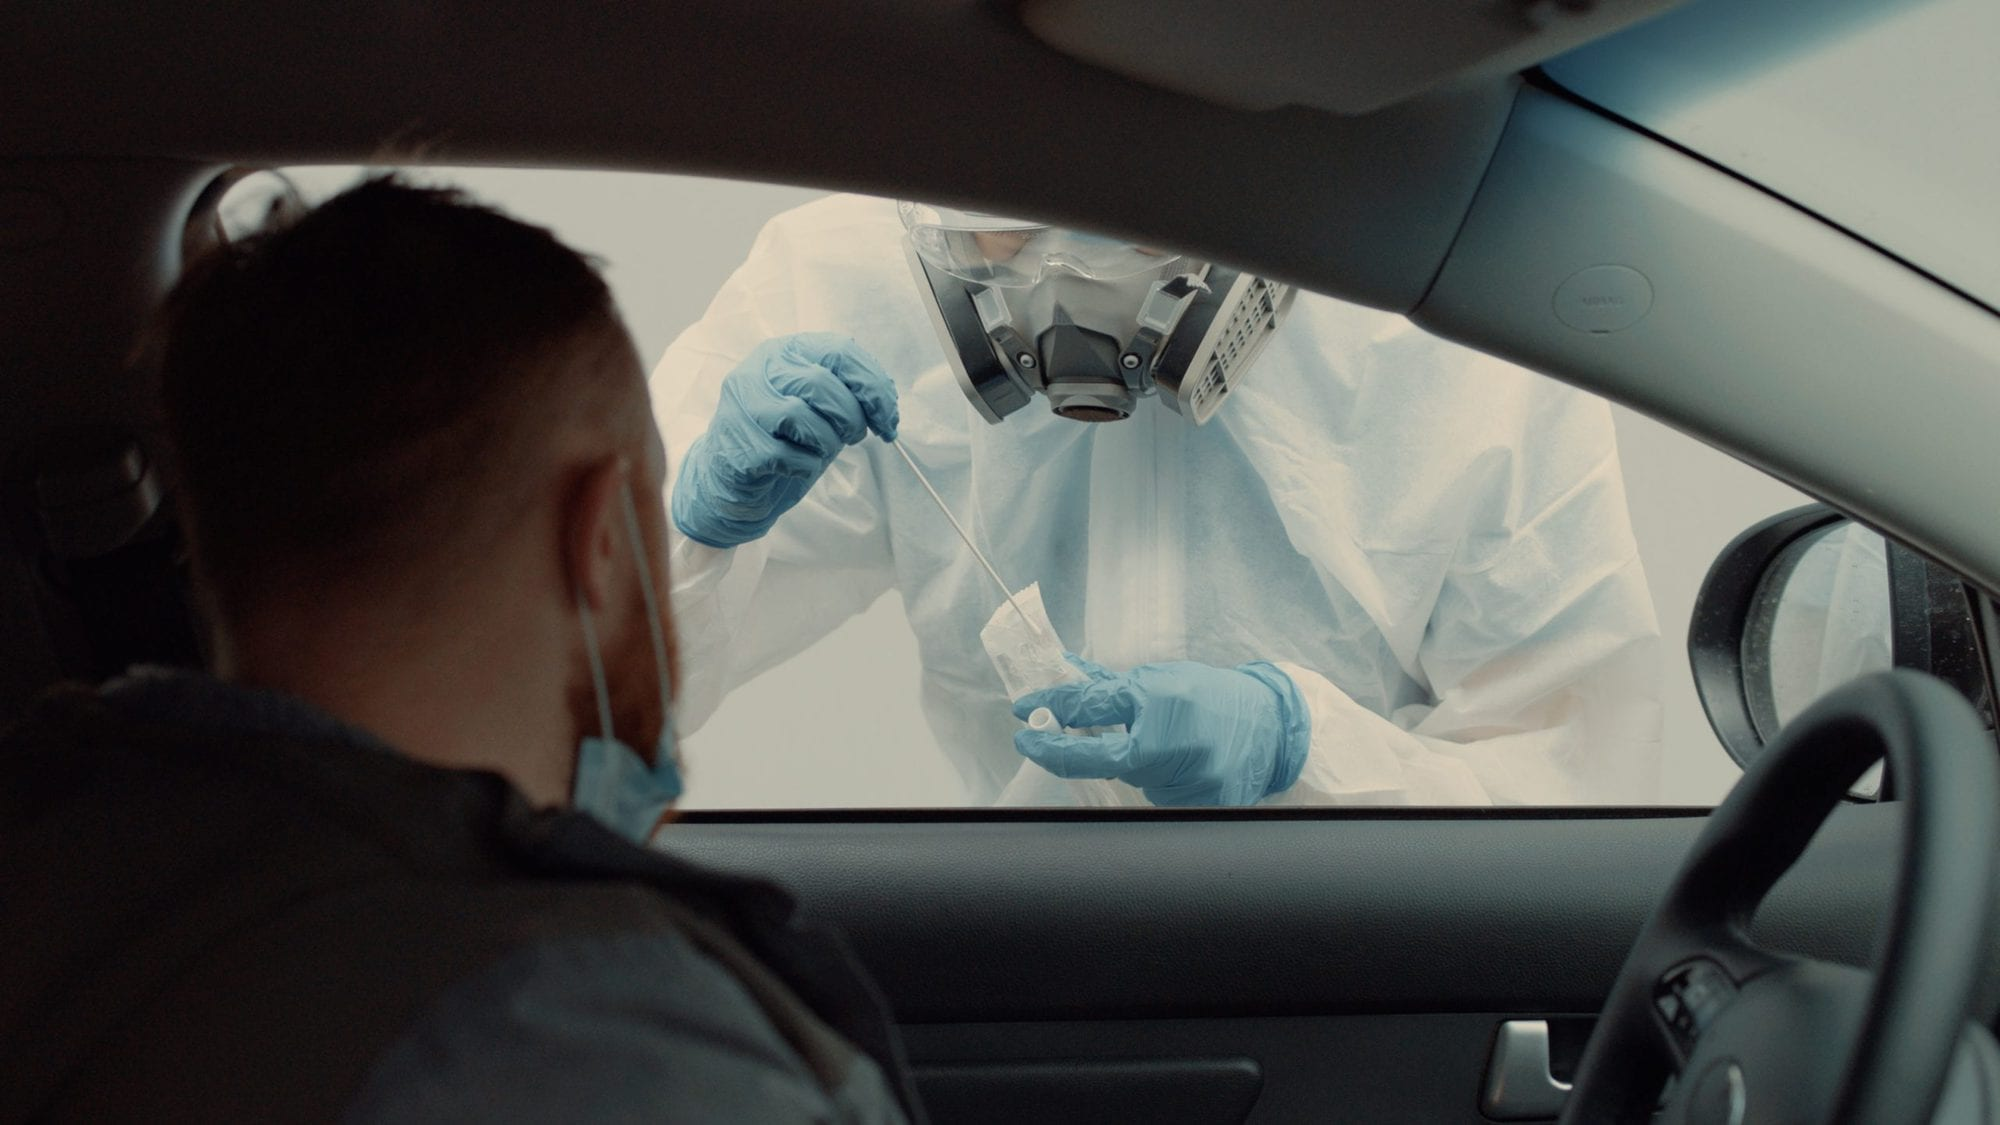 Patient is being tested in his vehicle on adrive-through coronavirus COVID-19 testing location. Pandemic, infection